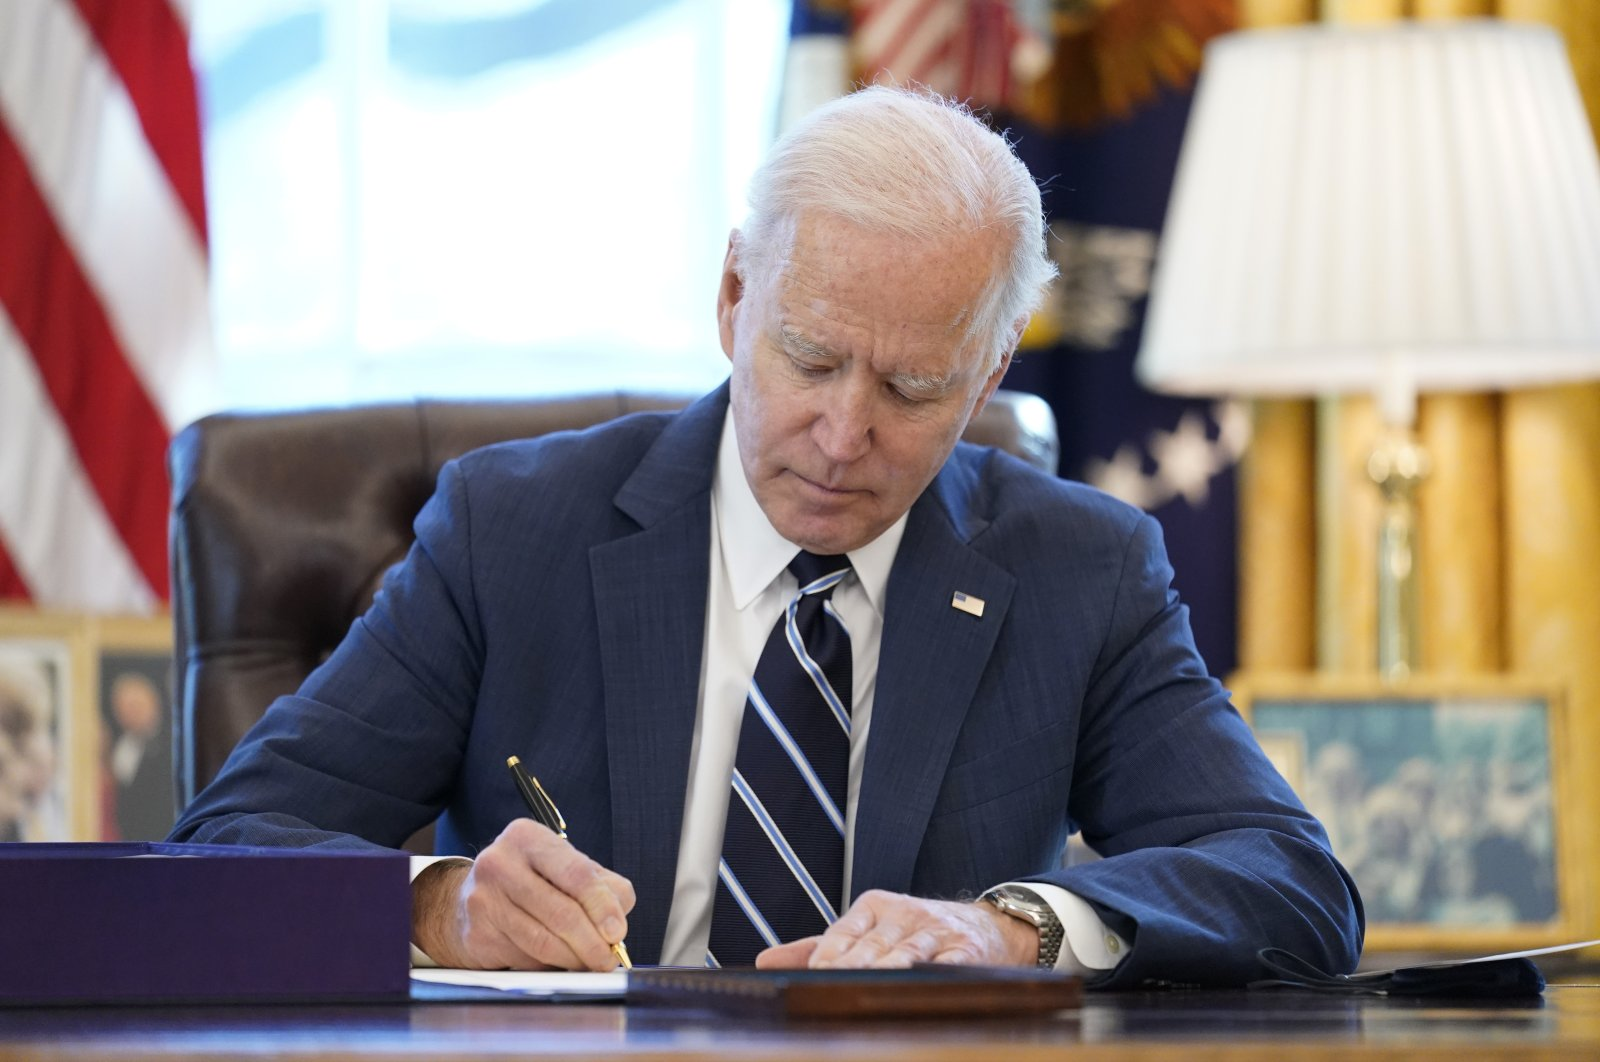 President Joe Biden signs the American Rescue Plan, a coronavirus relief package, in the Oval Office of the White House, in Washington, the U.S, March 11, 2021. (AP Photo)